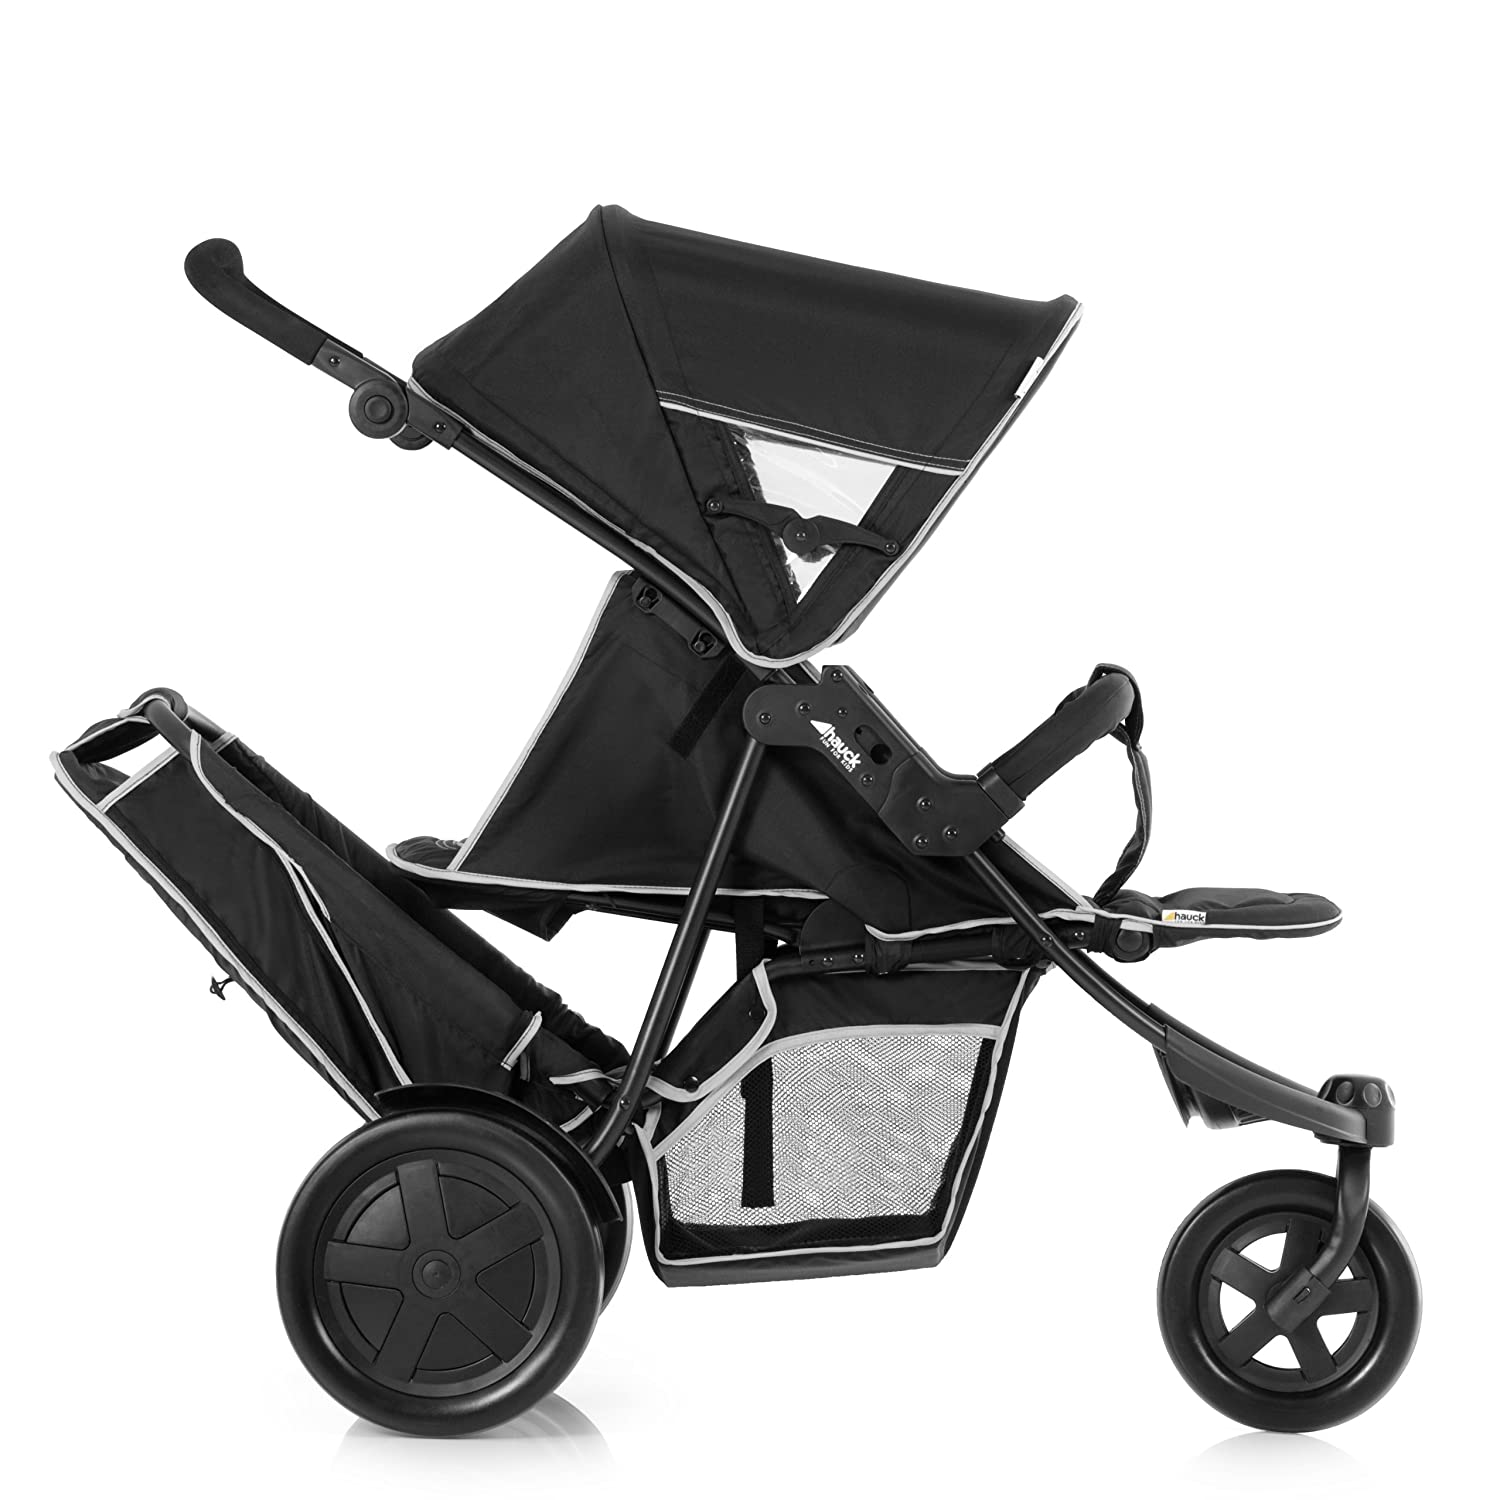 Hauck Freerider, From Birth, Tandem Double Buggy with Raincover - Black H-51304-EN-000-000